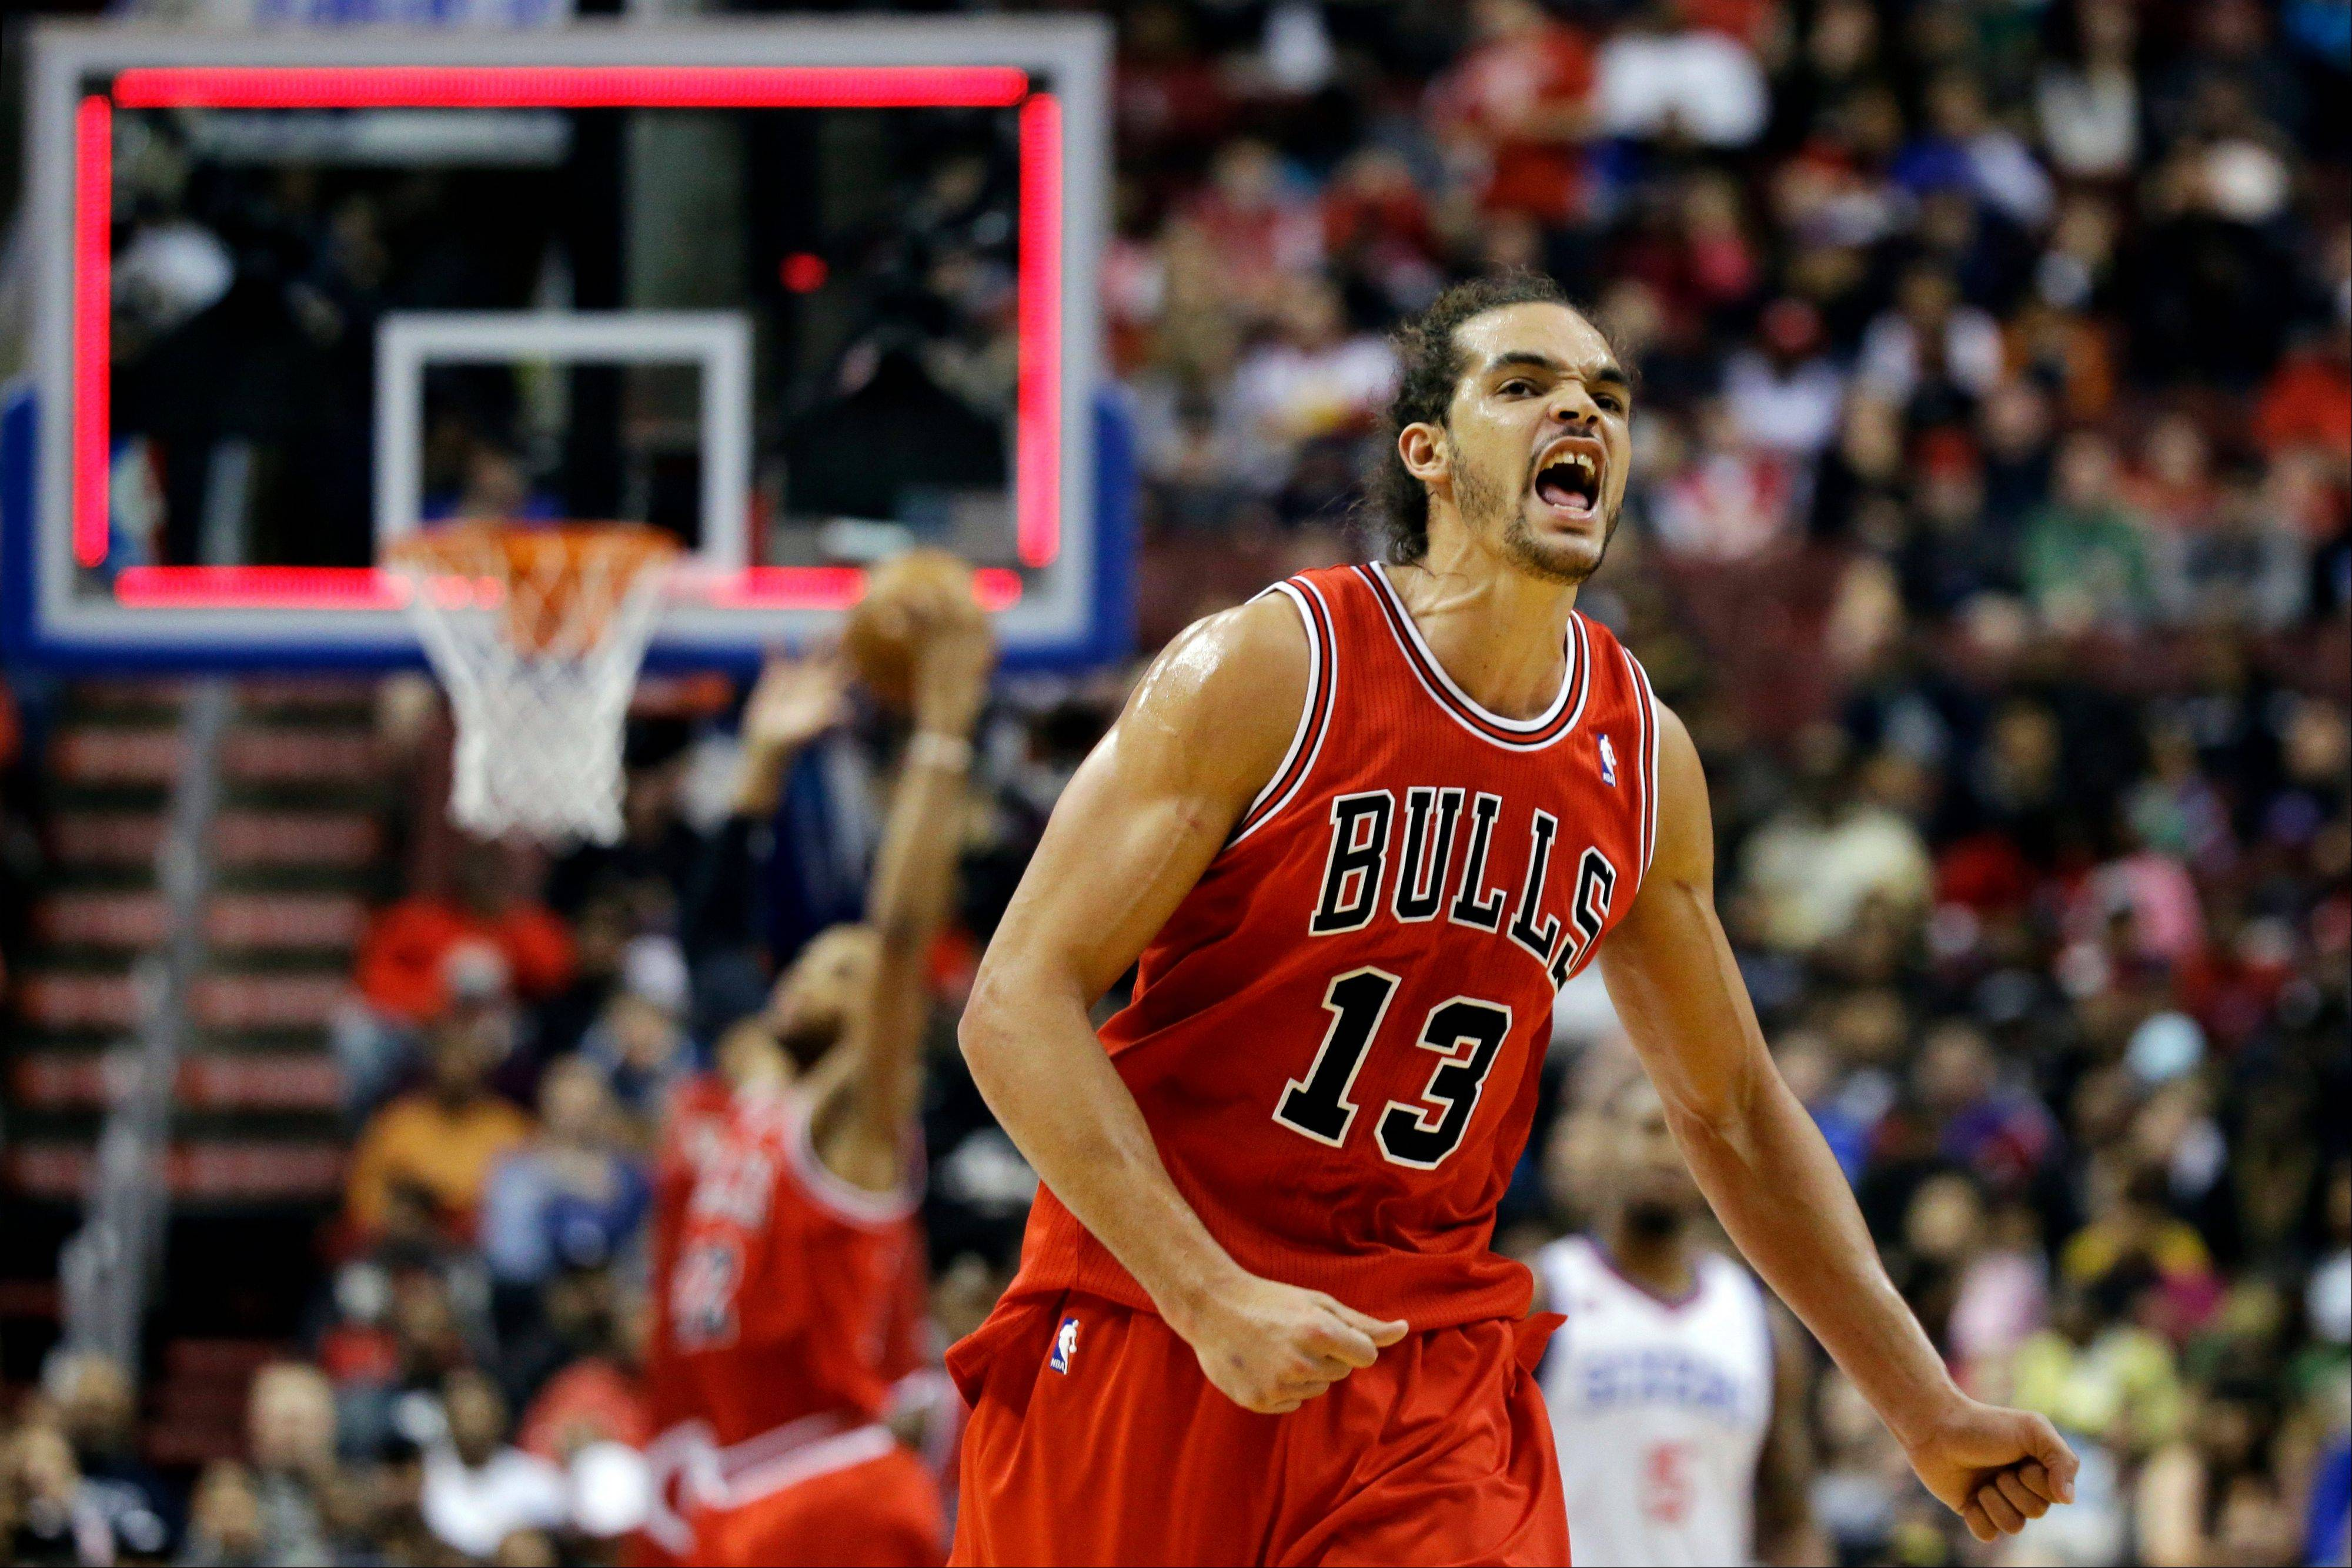 Bulls center Joakim Noah reacts after the Philadelphia 76ers' Spencer Hawes failed to score Wednesday at the end of the first quarter in Philadelphia.